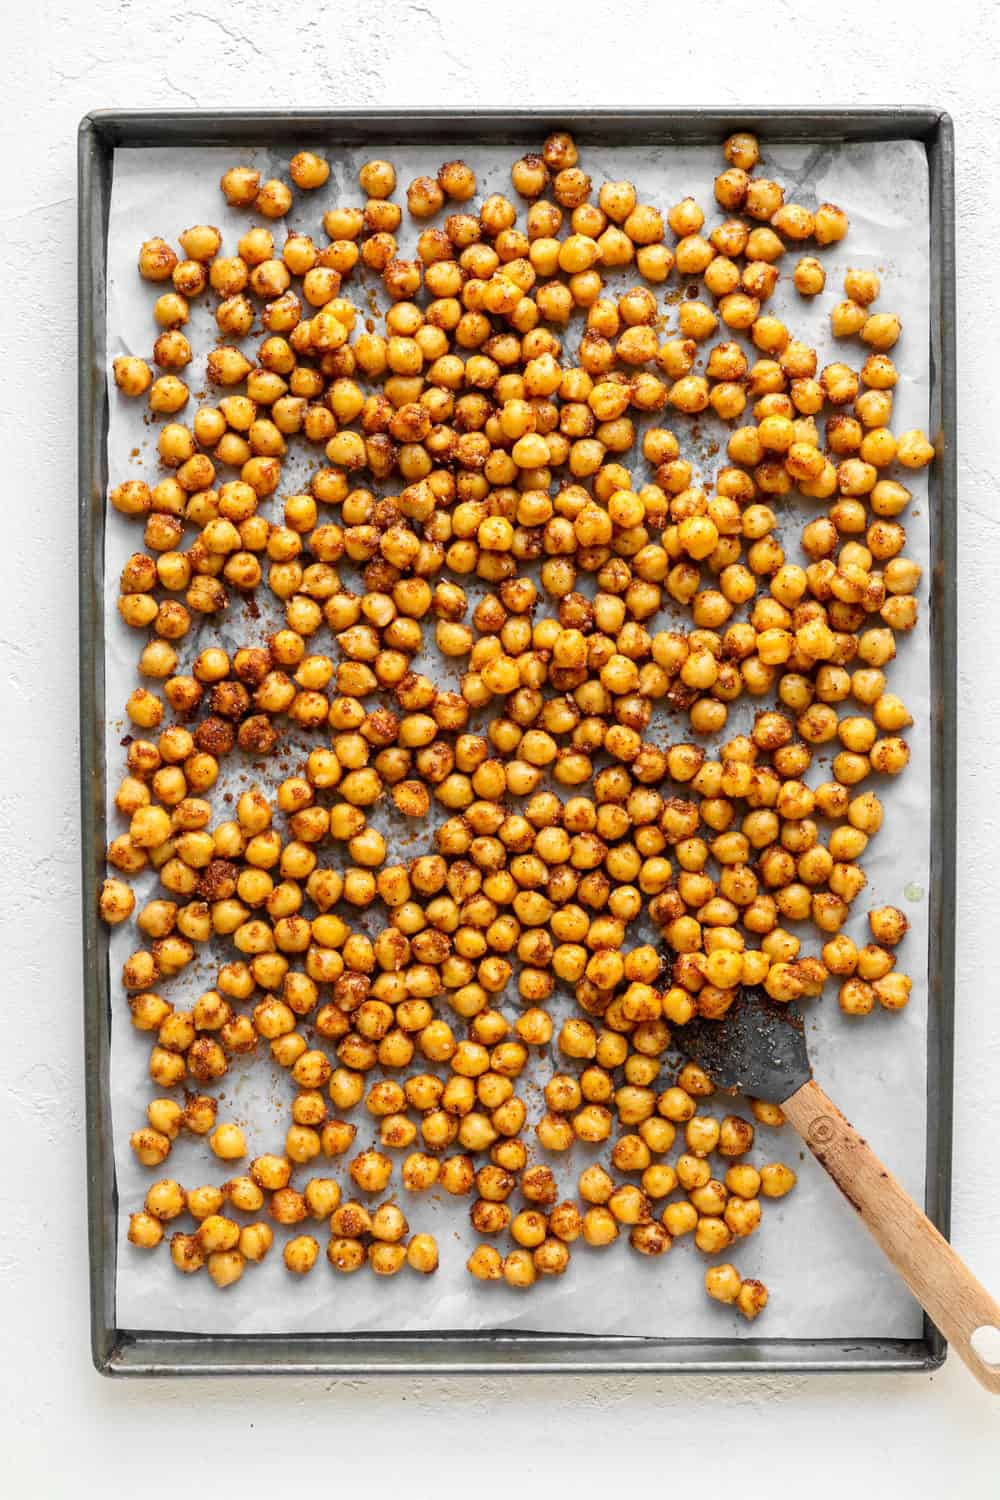 Baking sheet covered with white parchment paper, topped with a pile of chickpeas and a gray spatula on it